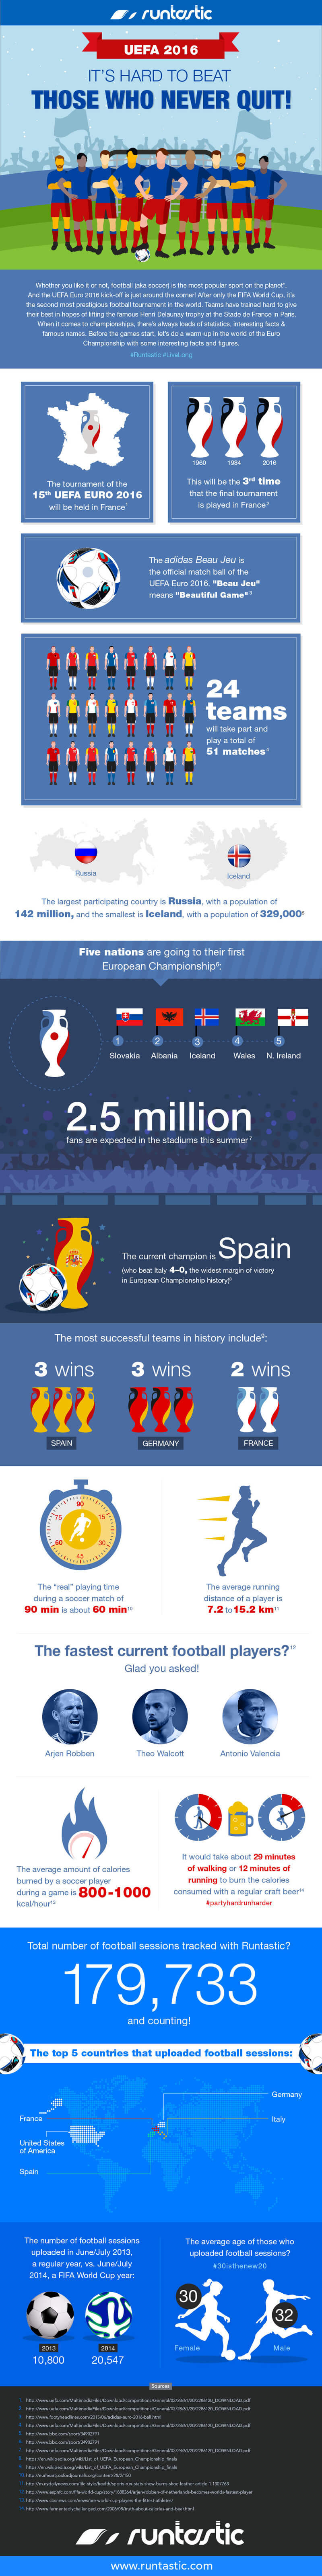 Infographic with facts about Football players and the UEFA 2016.